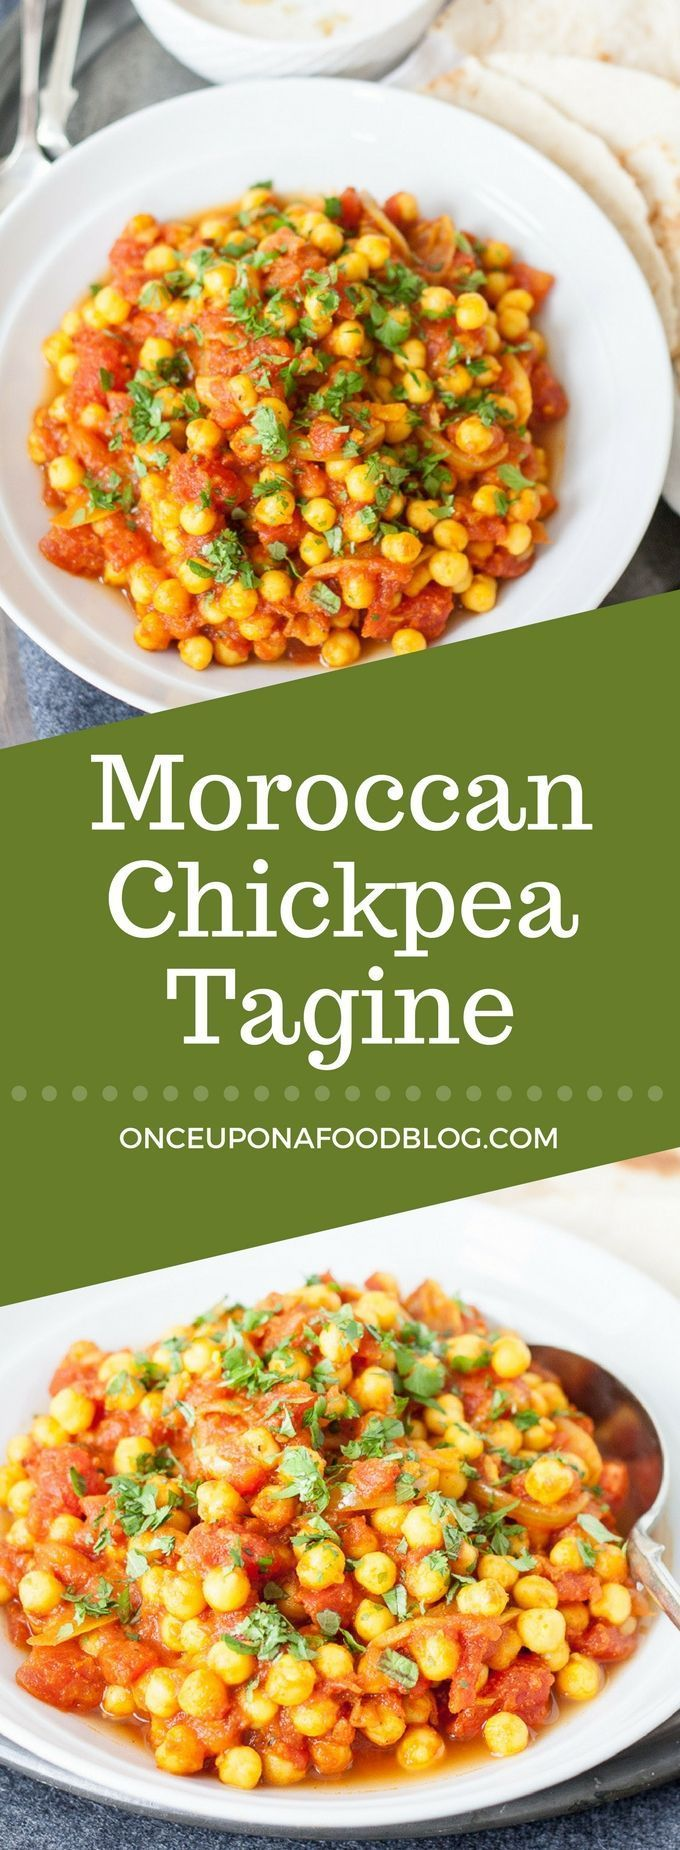 Best 25 vegetarian tagine ideas on pinterest recipes vegetable moroccan chickpea tagine healthy dinner mealseasy vegetarian forumfinder Image collections